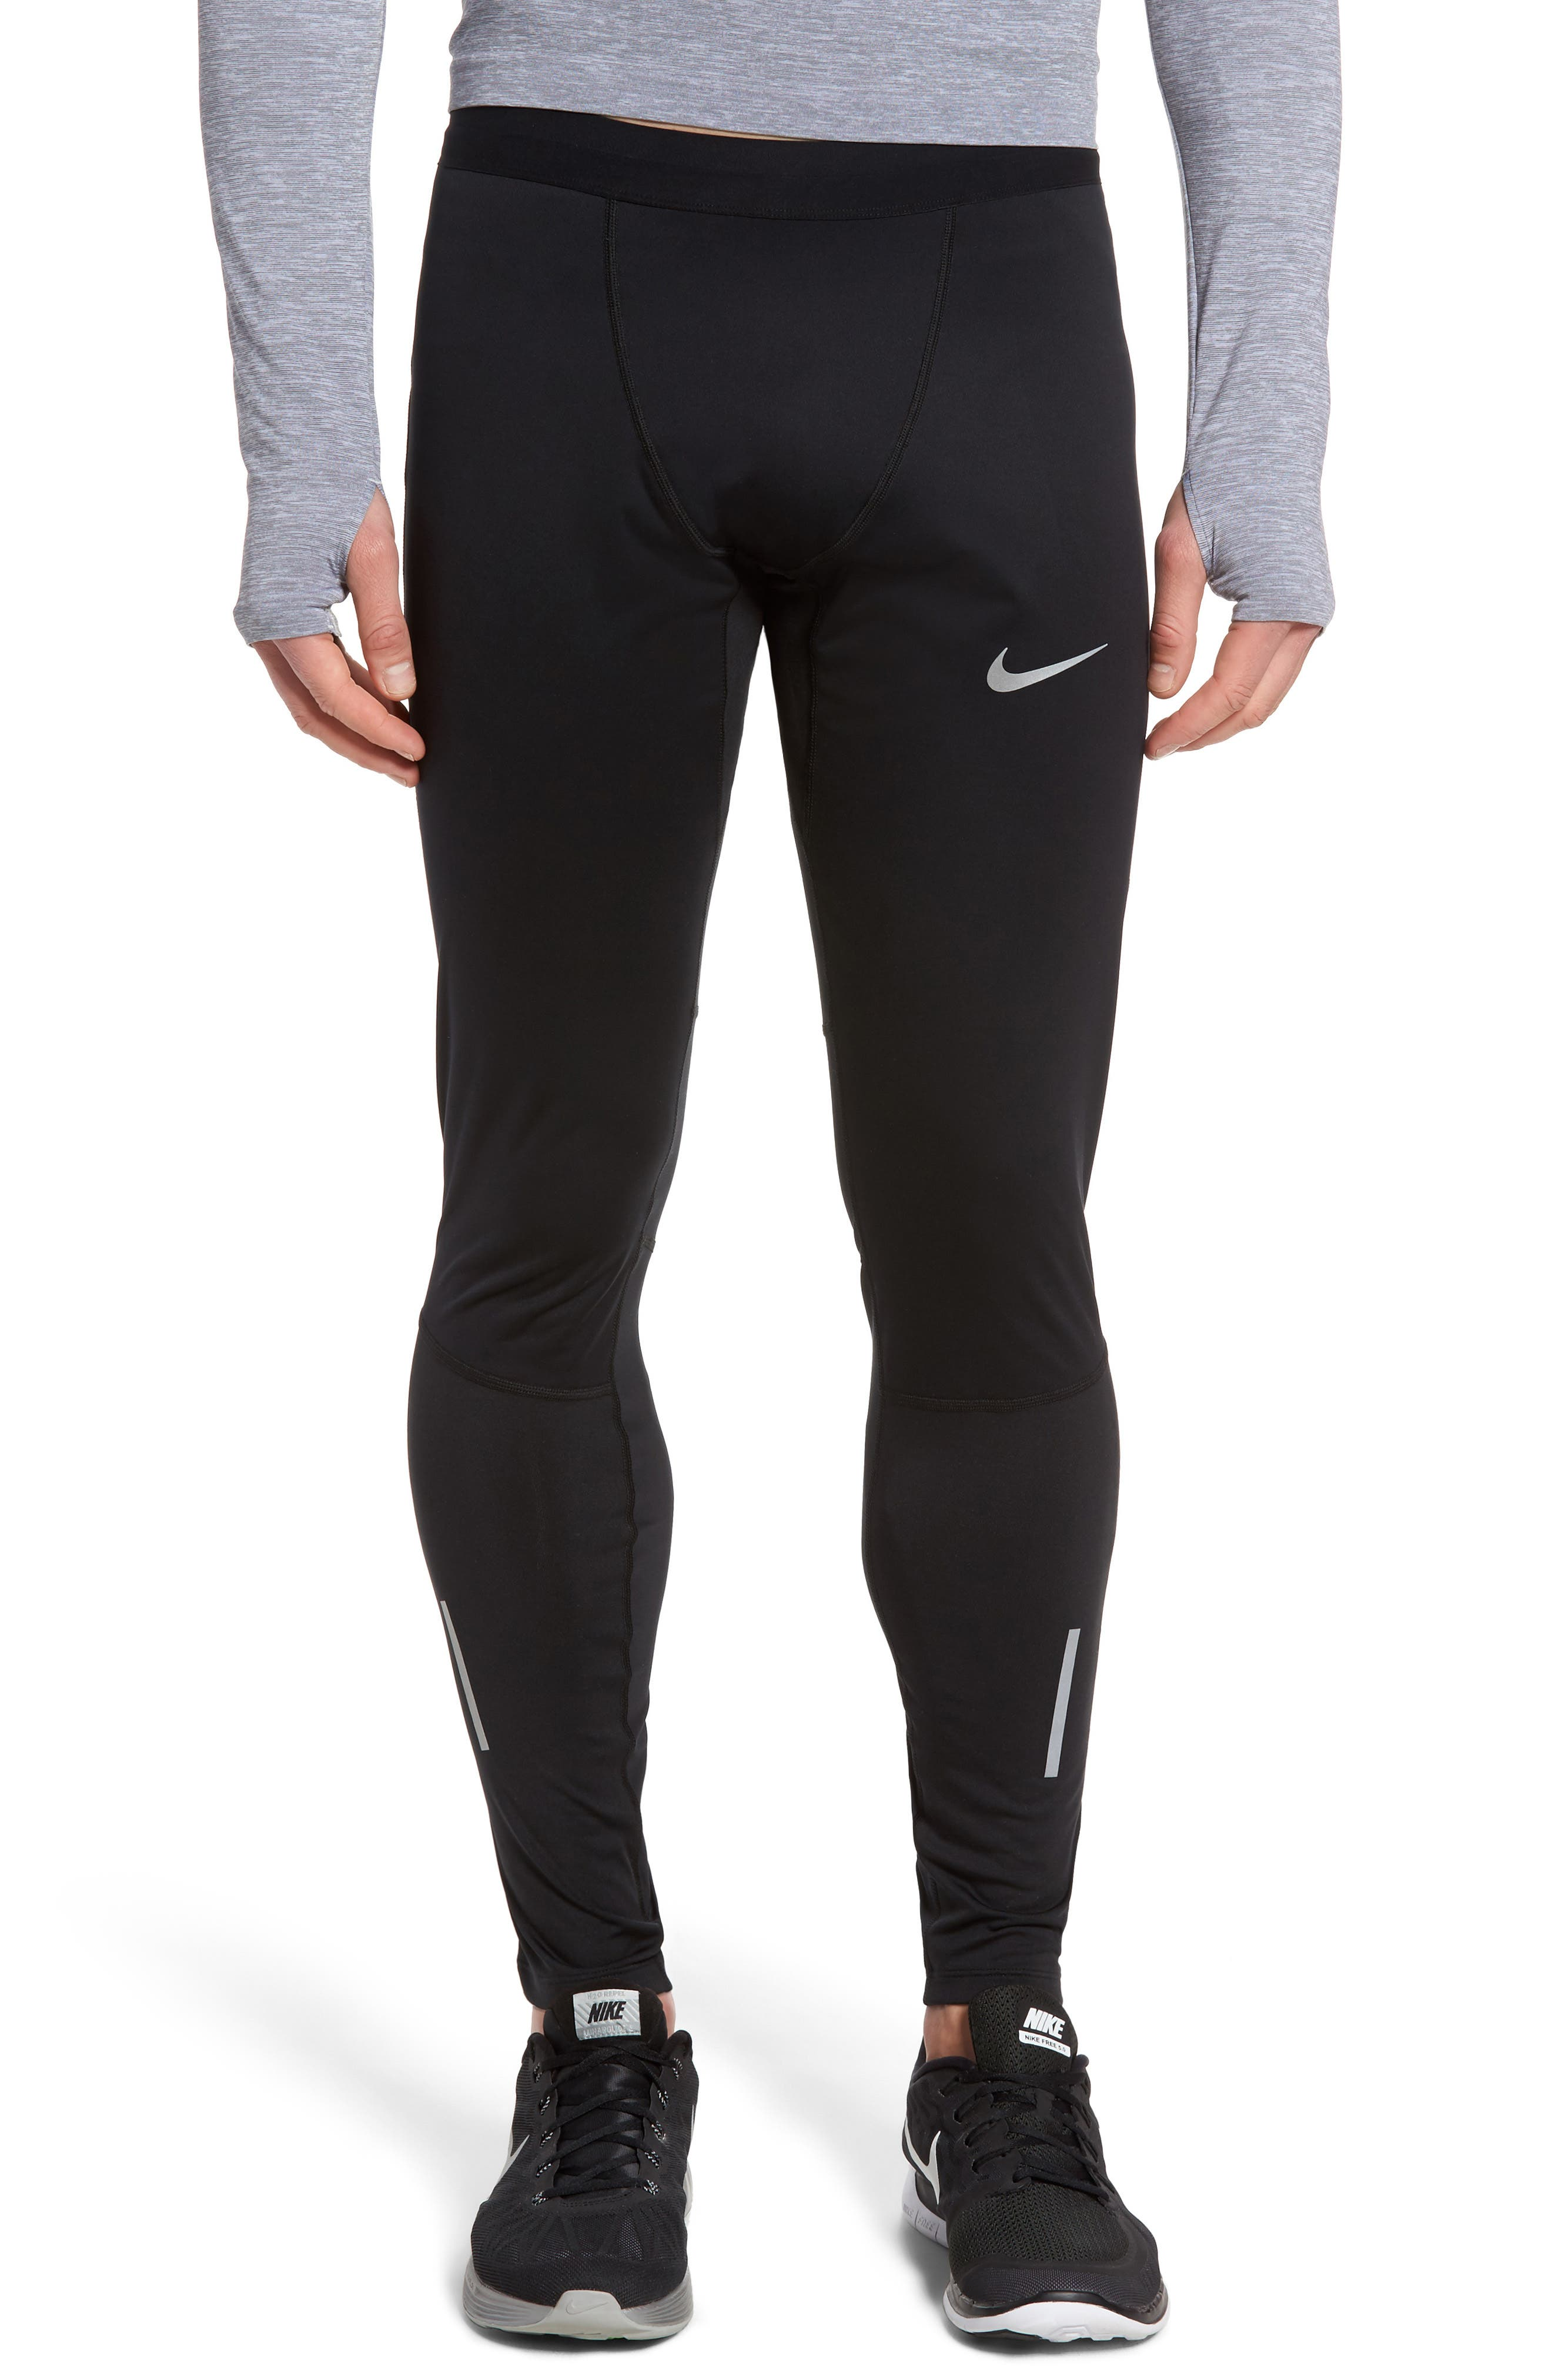 Nike Shield Tech Weather Resistant Running Tights